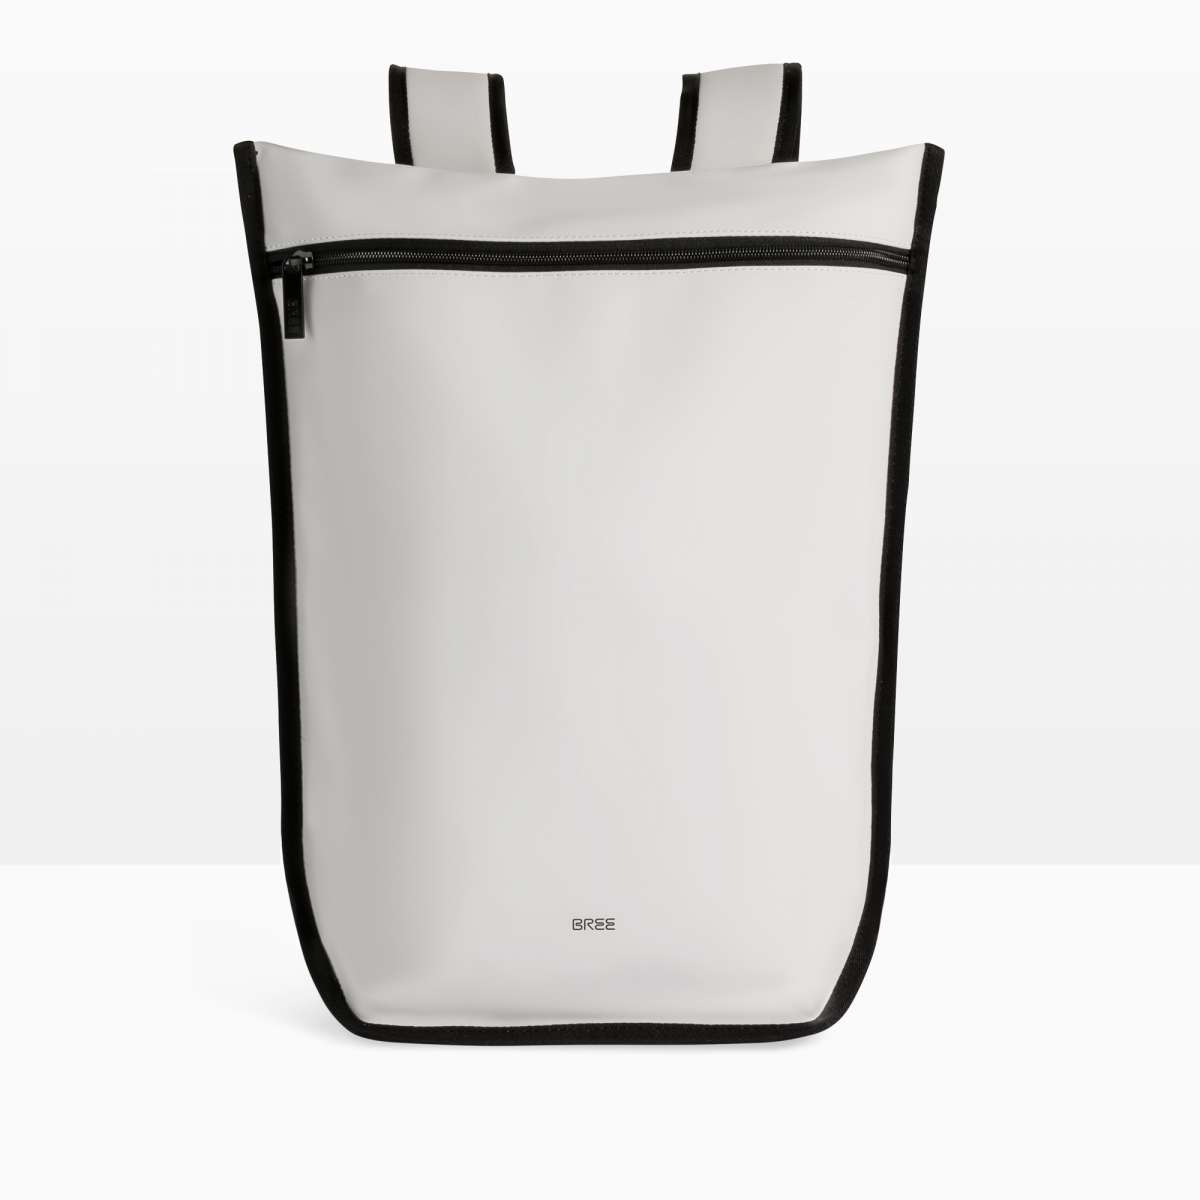 Punch Pro 50th 302, white, backpack